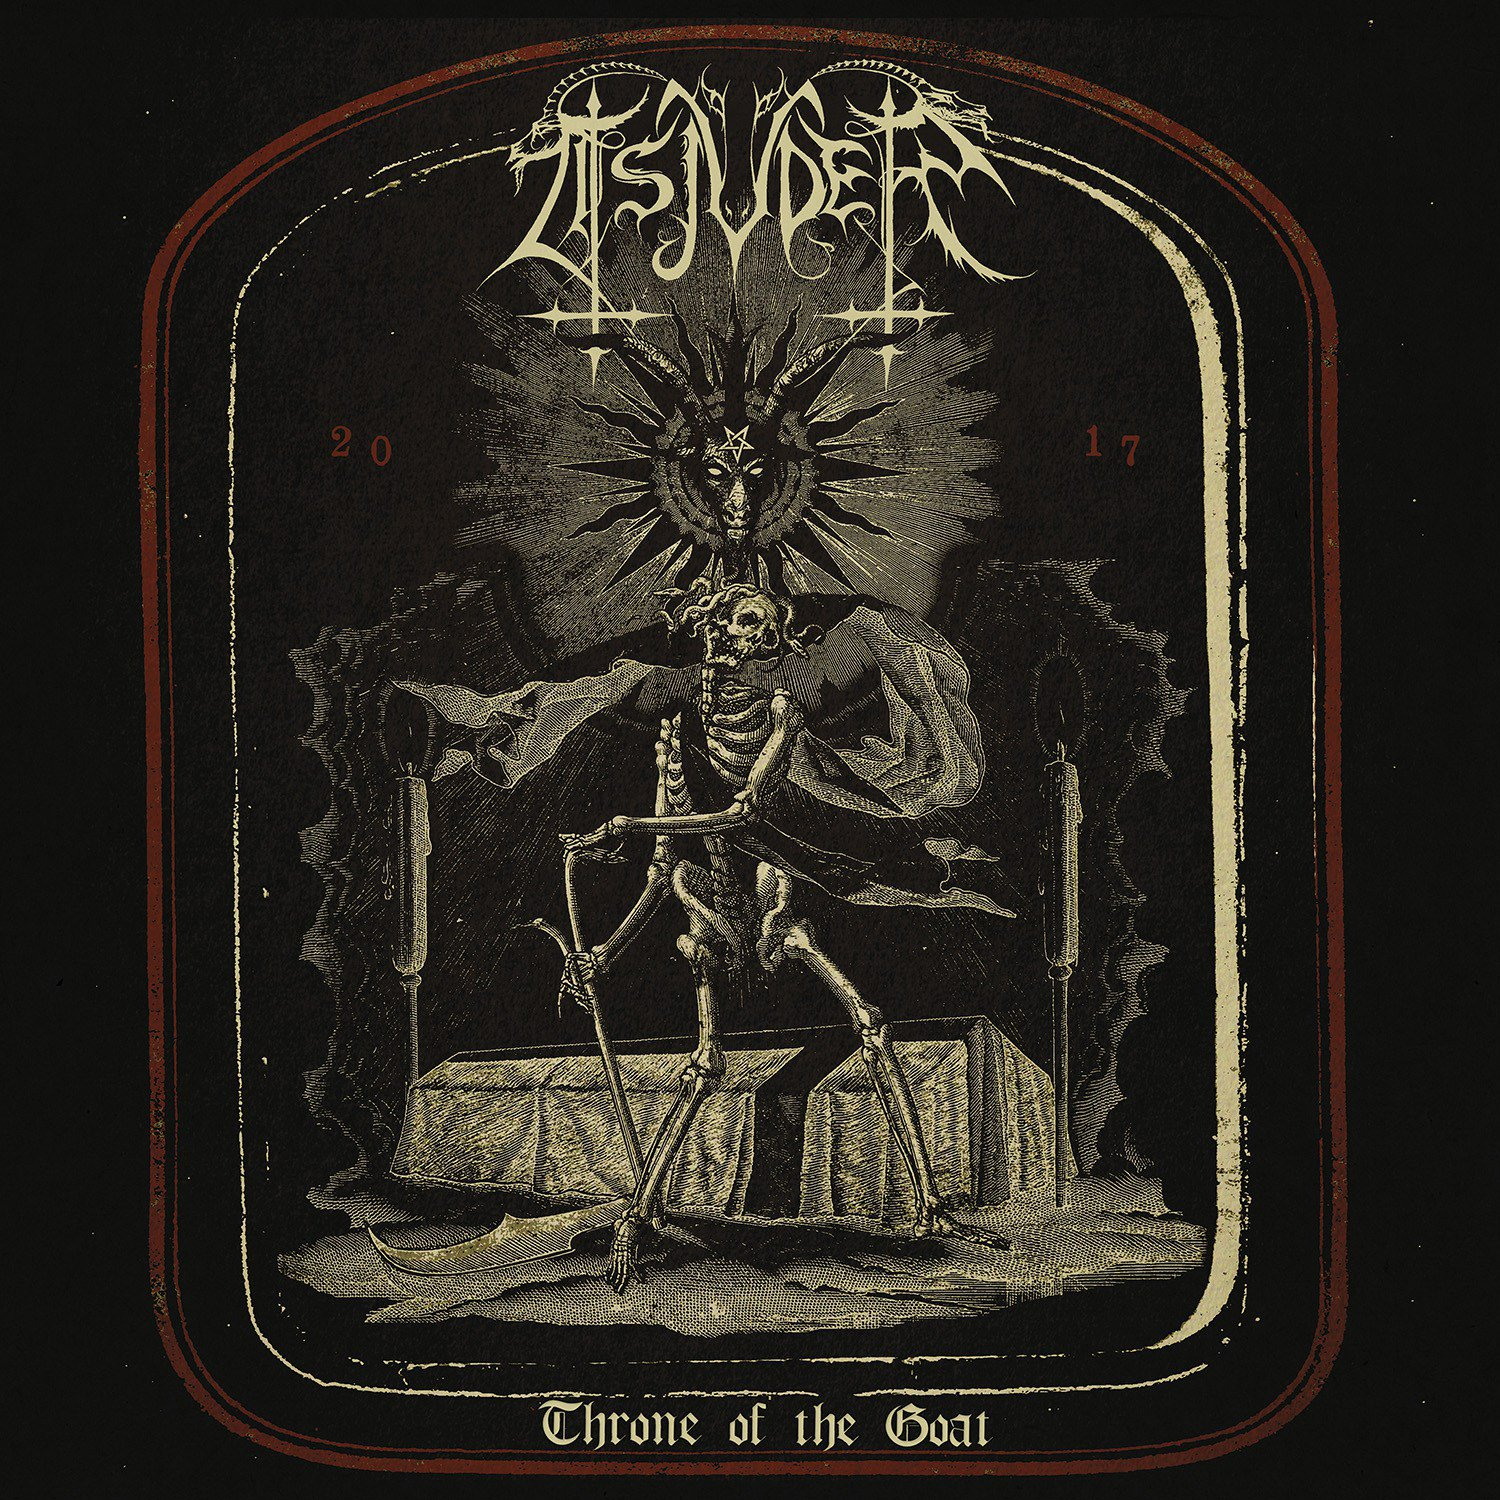 CD : Tsjuder - Throne Of The Goat (CD)